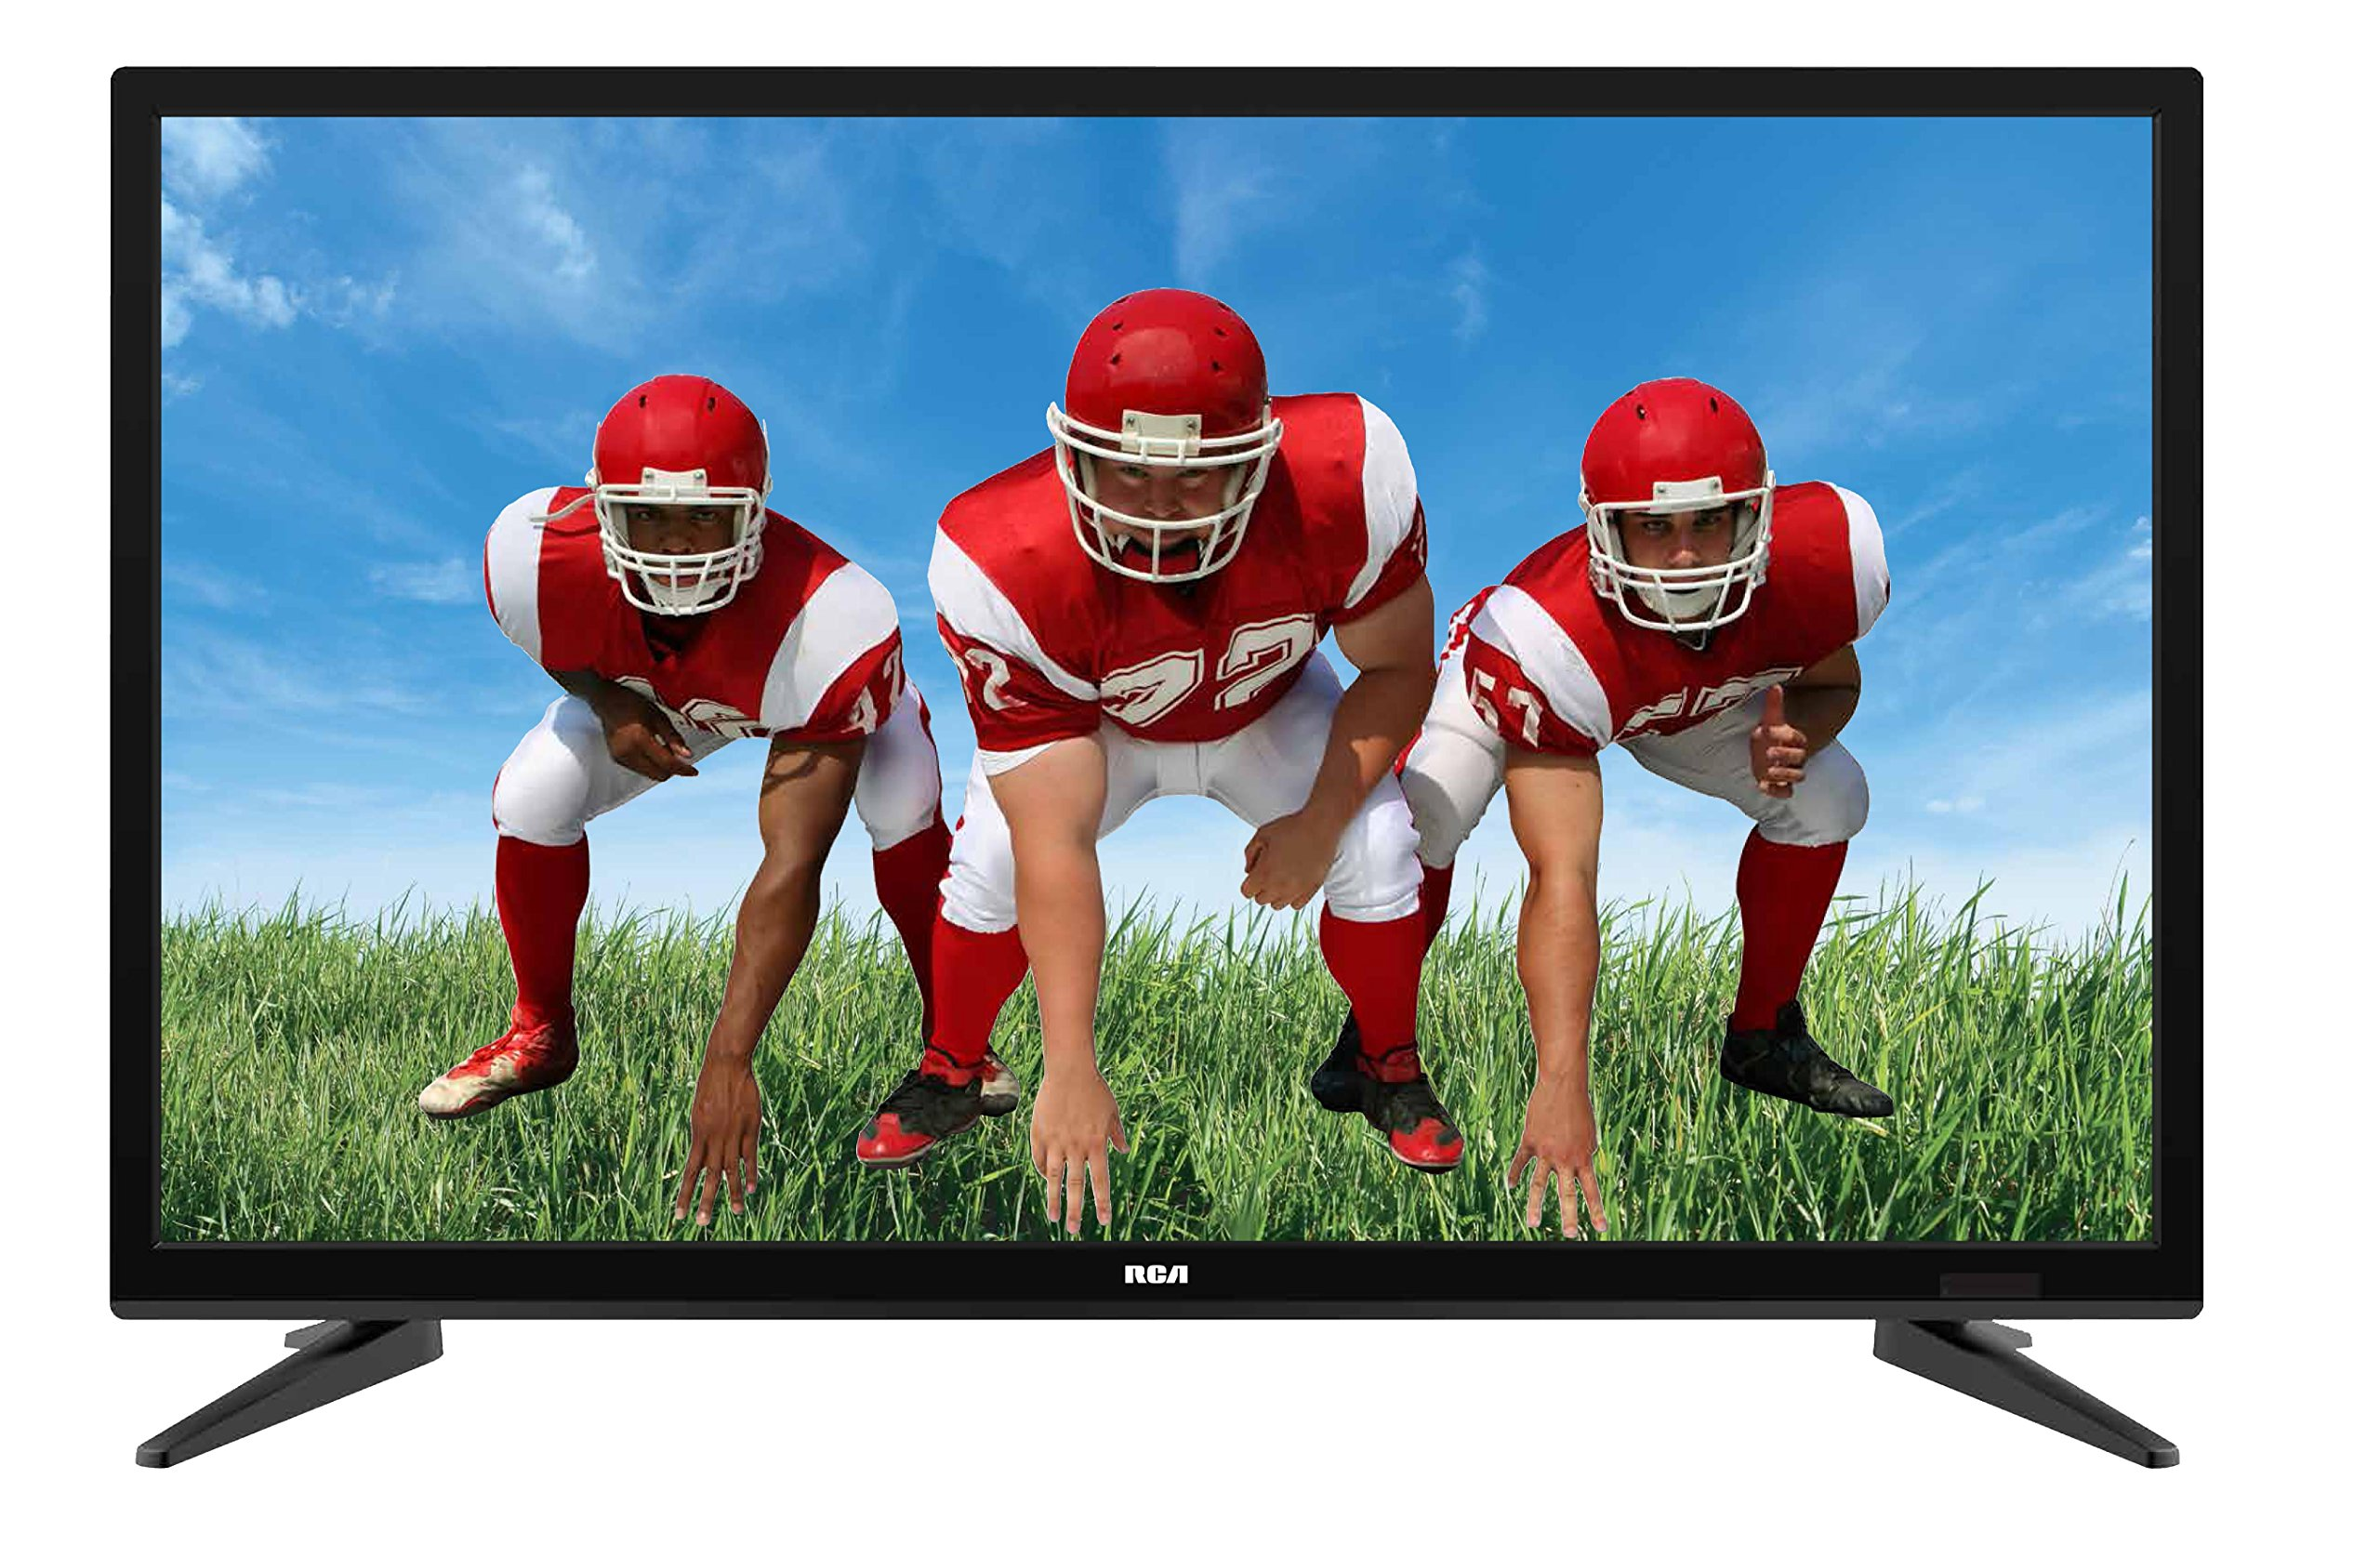 RCA RT2449 24-Inch 1080p Full HD TV/PC Monitor by Curtis